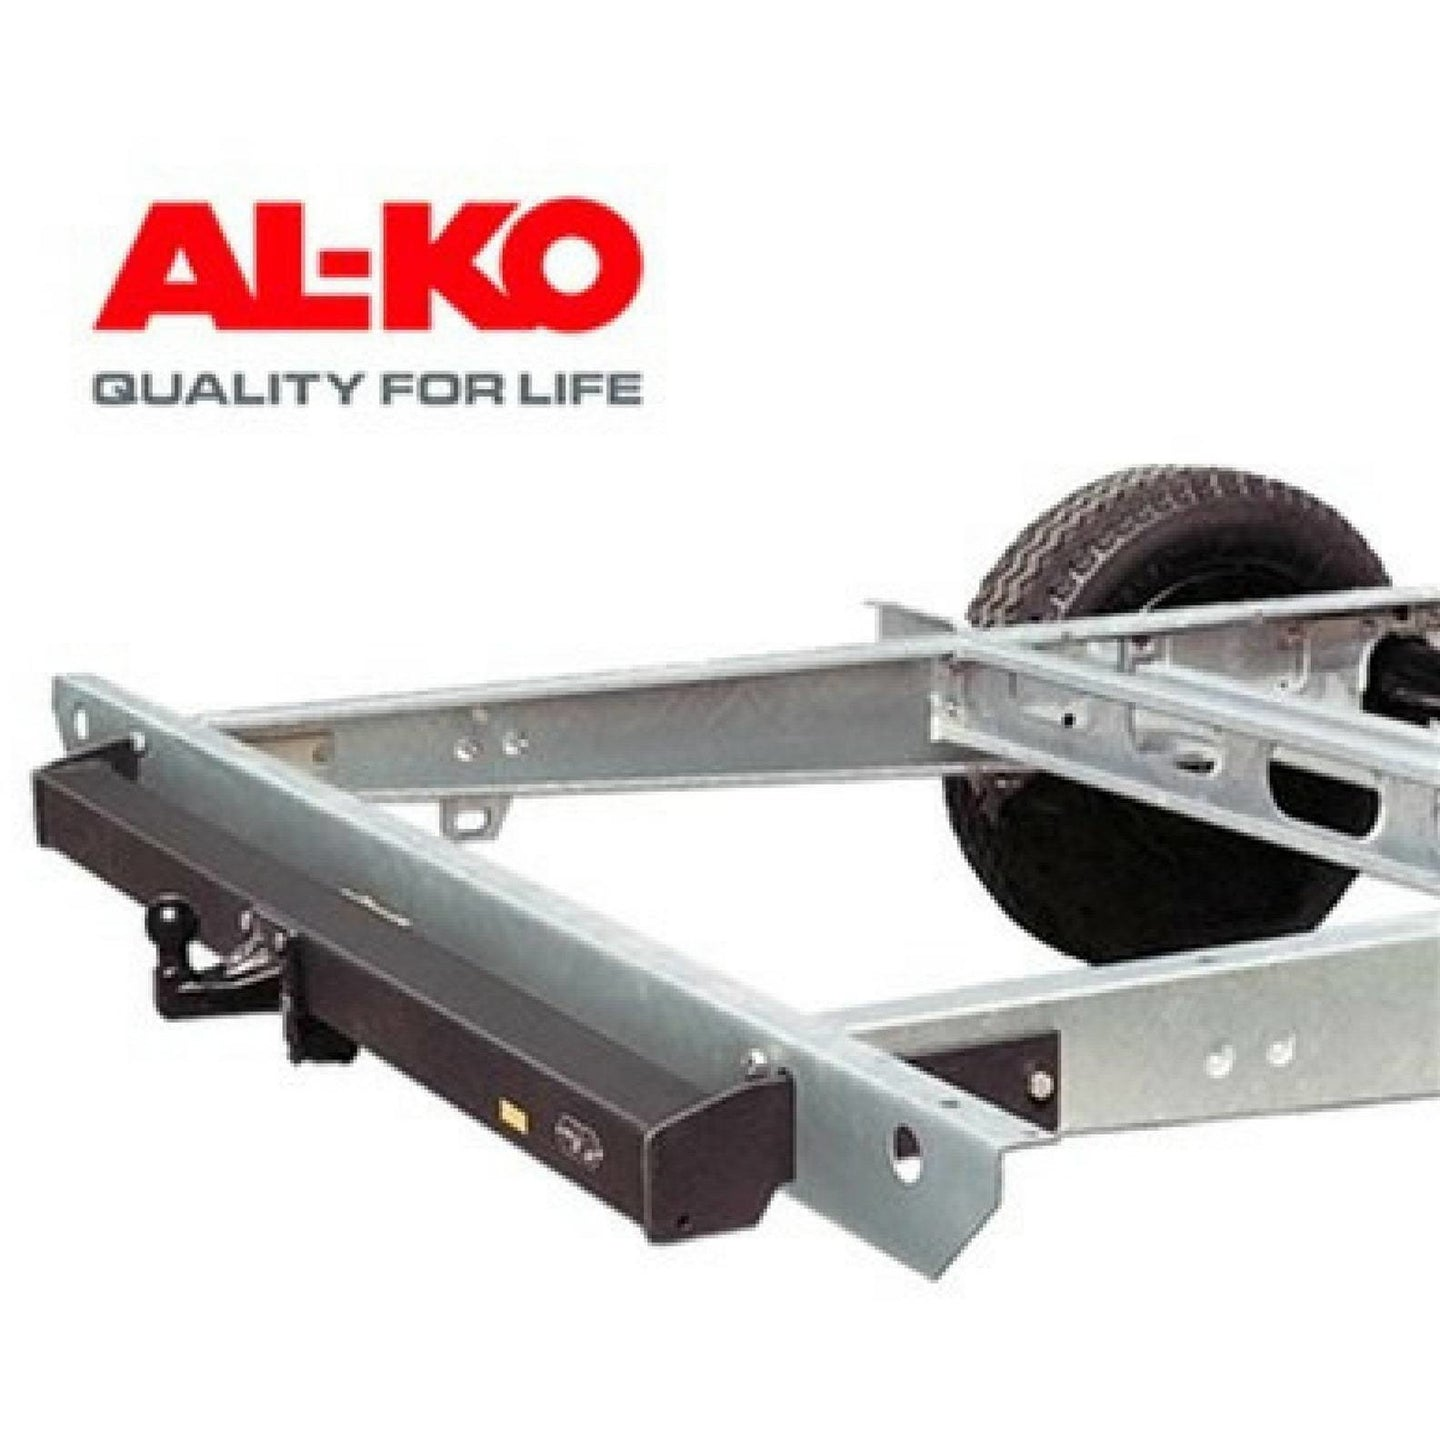 ALKO Towbar Assembly (1620357) - Quality Caravan Awnings